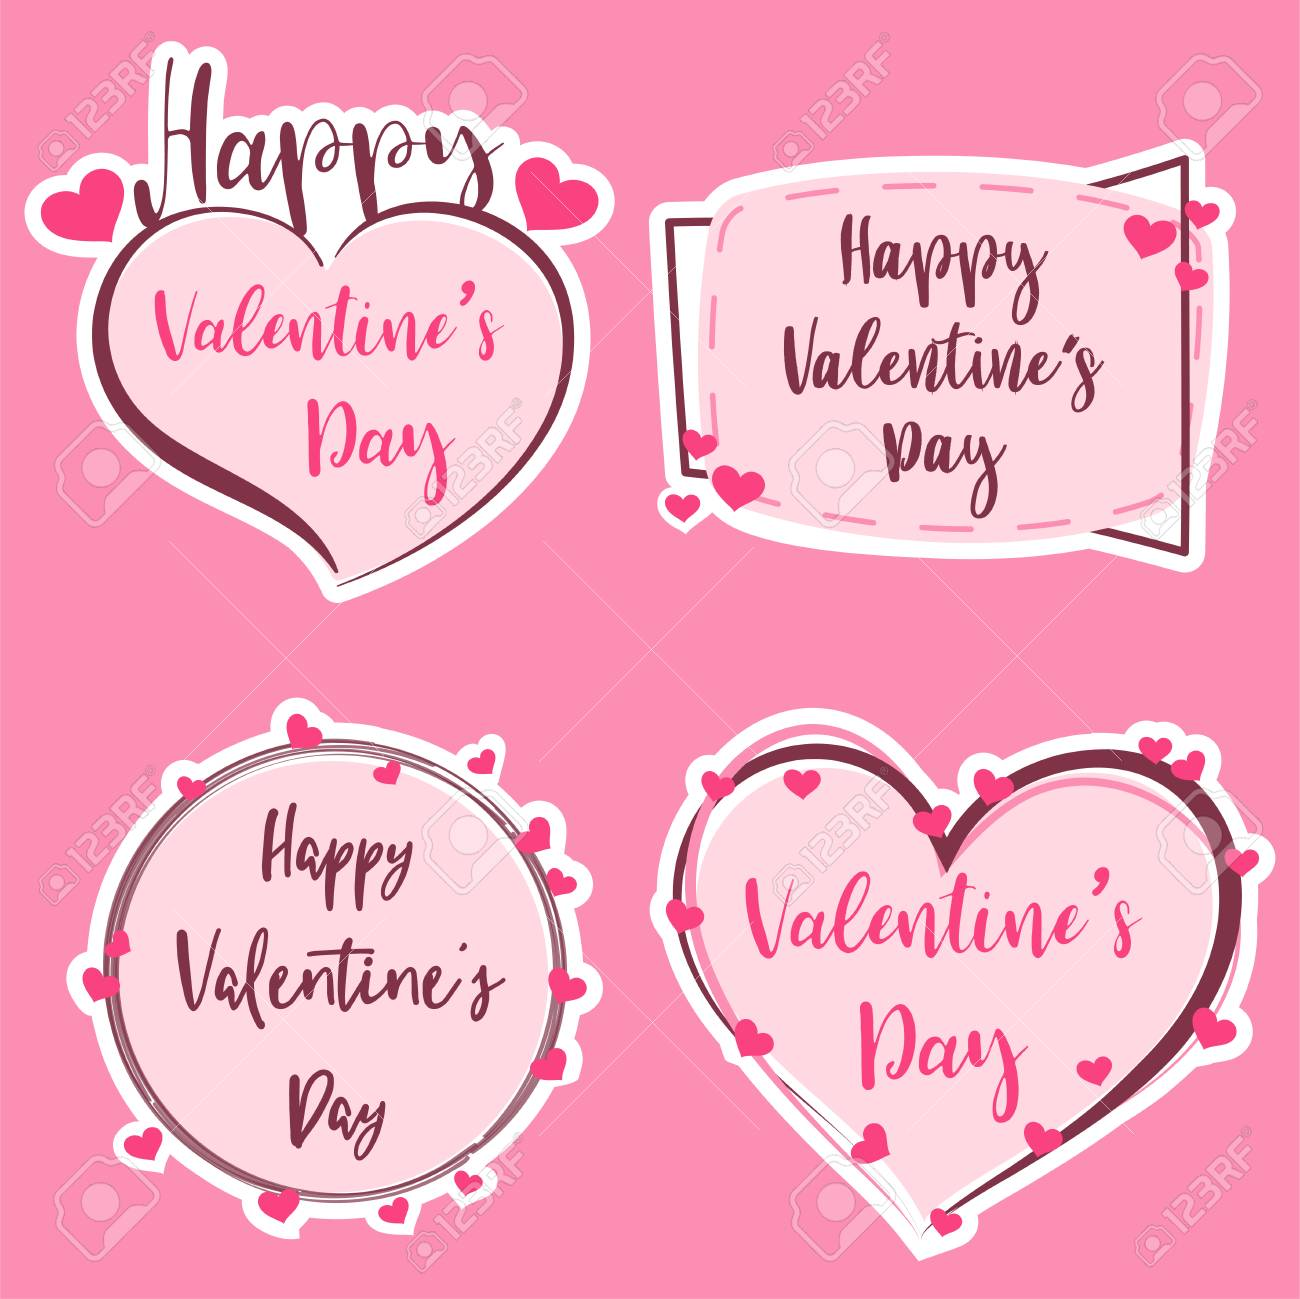 Cute Sticker Happy Valentine S Day Banner Valentine Art Heart